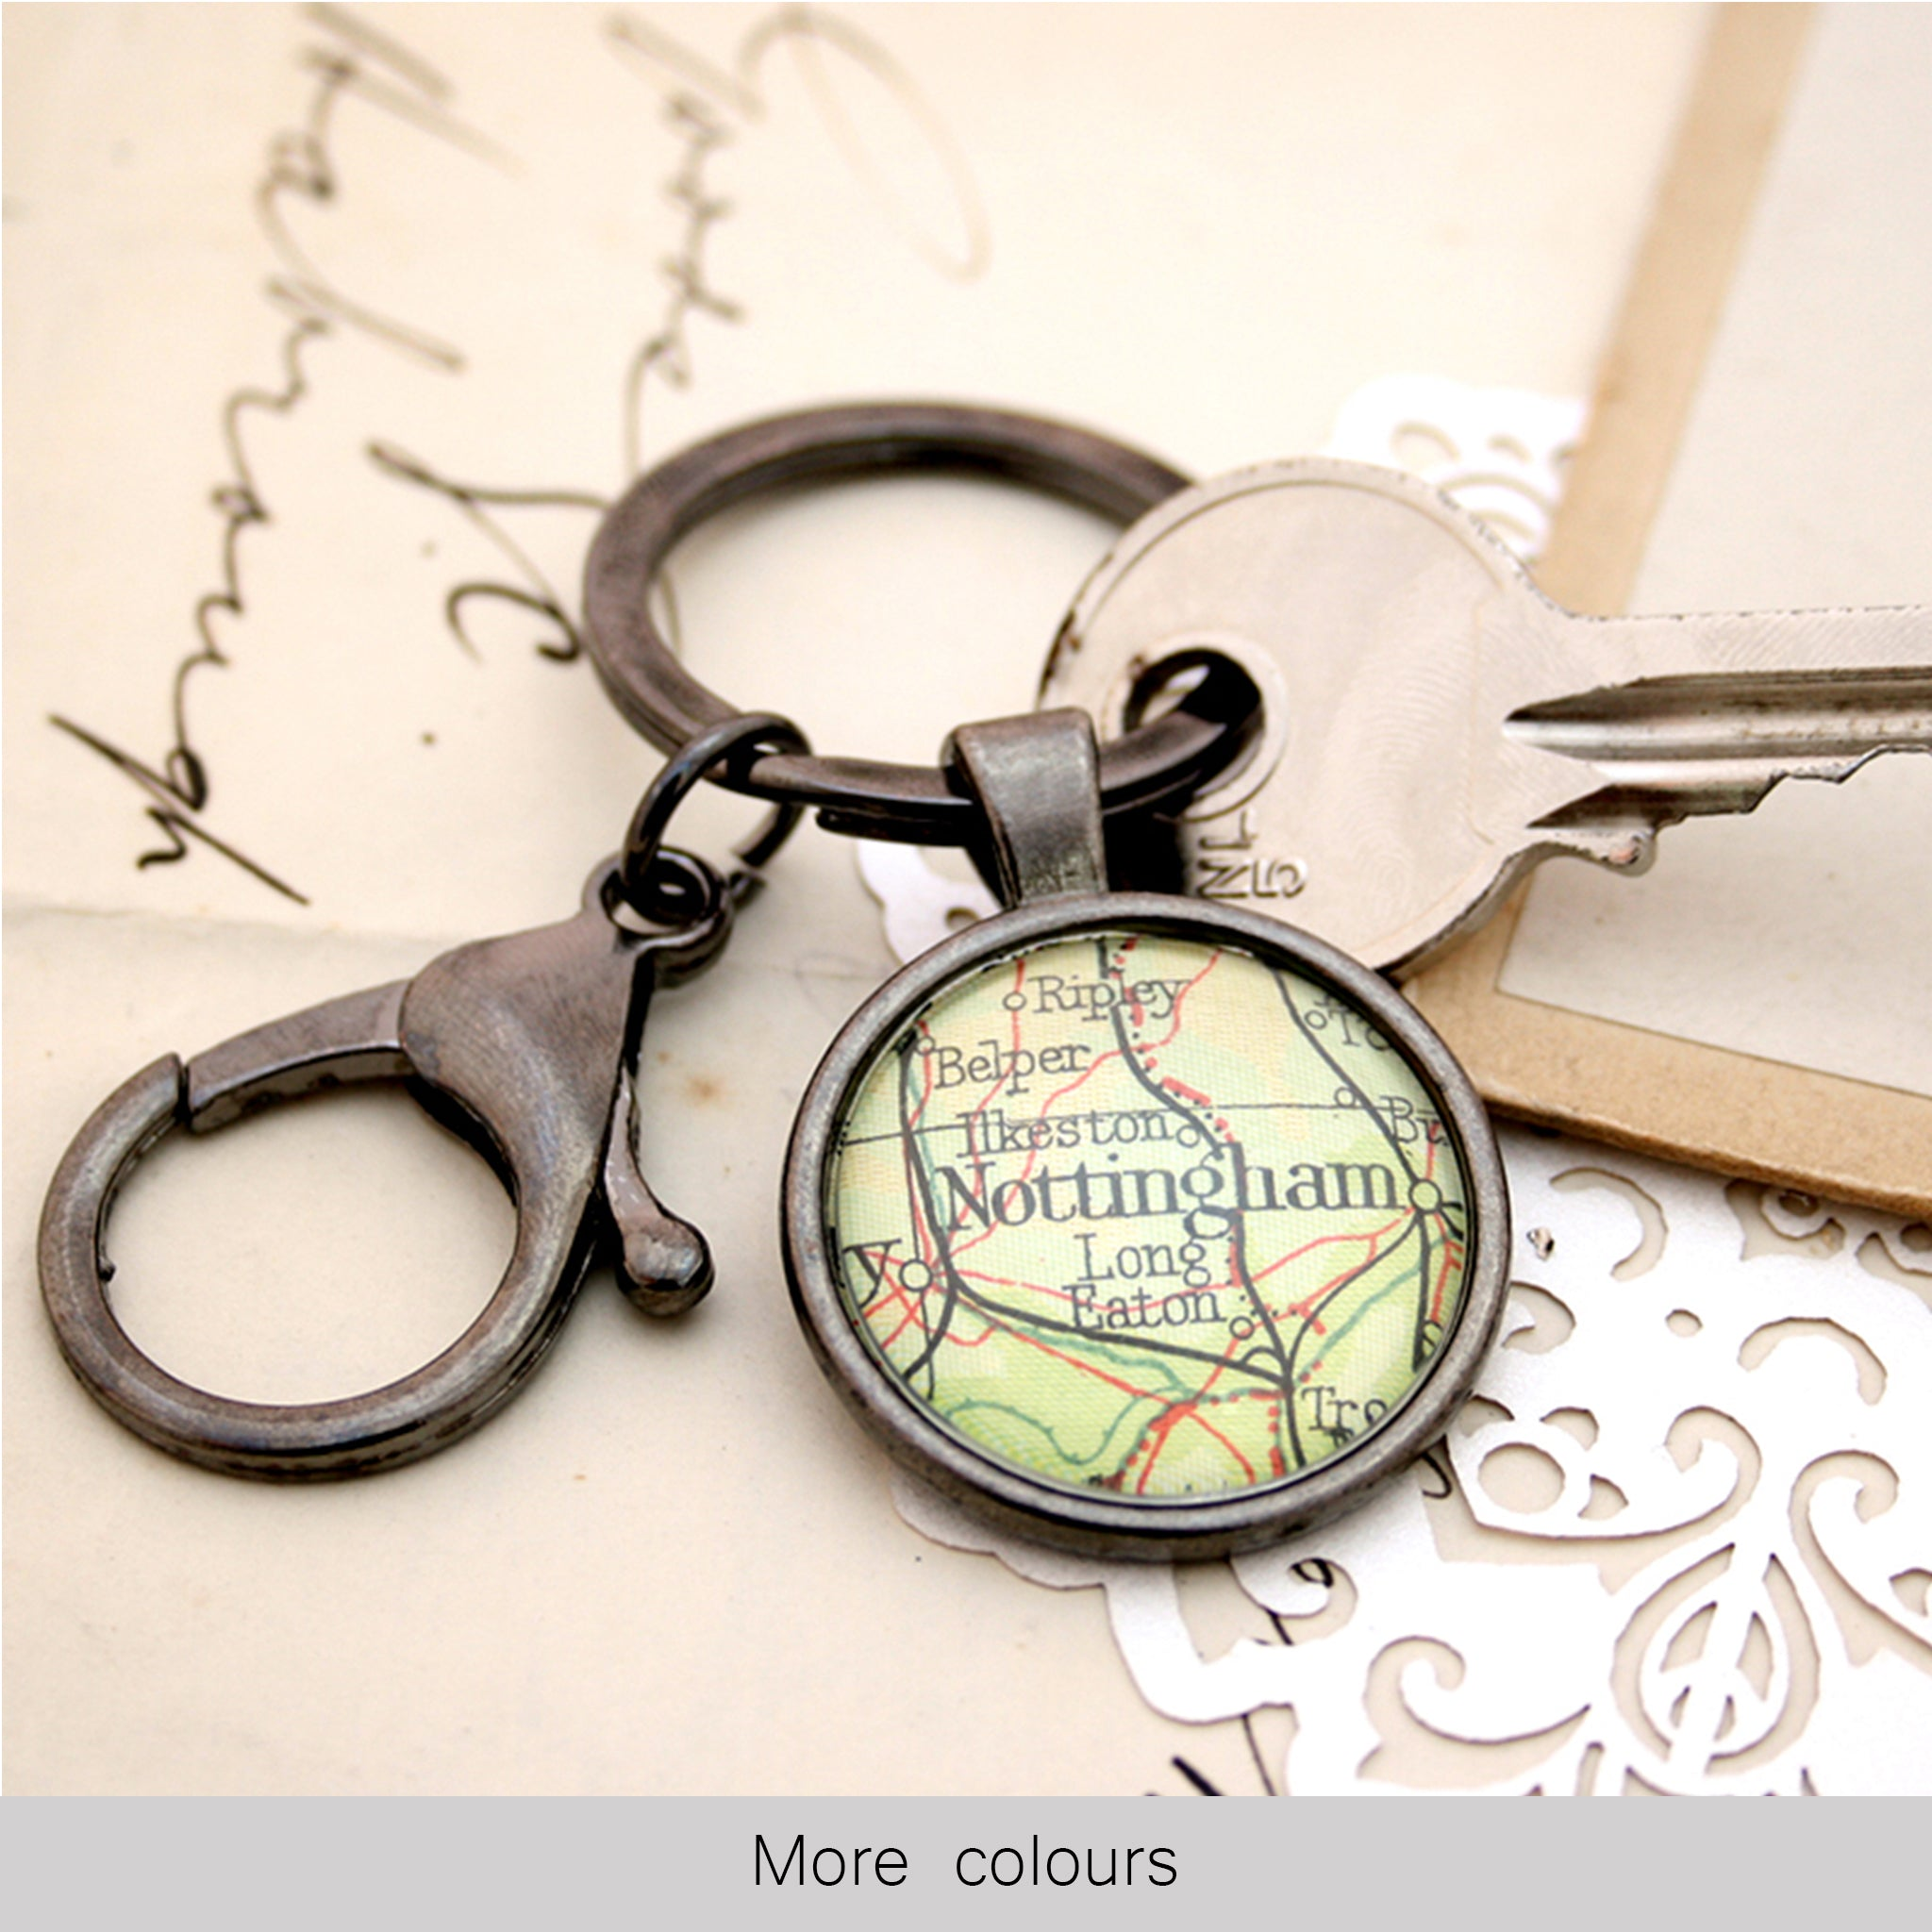 Personalised keyring in gunmetal black color featuring map of Nottingham